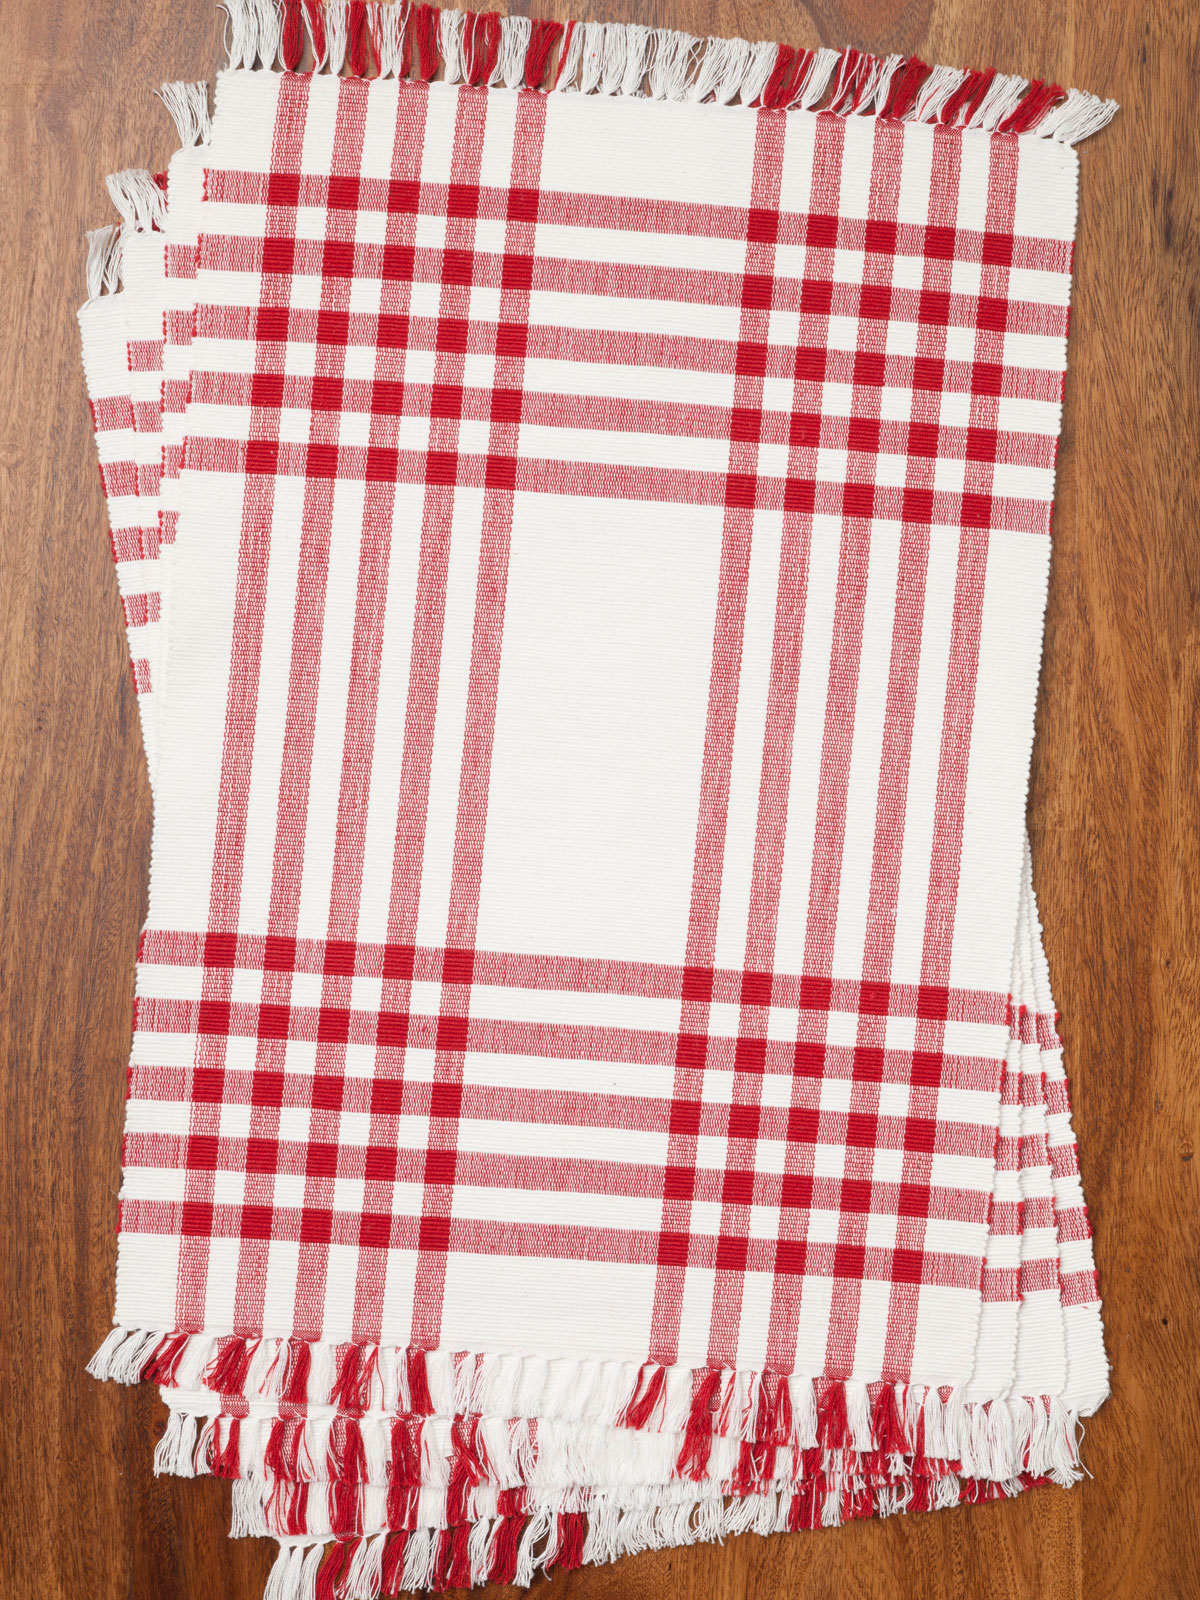 Happy Picnic Gingham Rib Placemat Set 4 Red April S